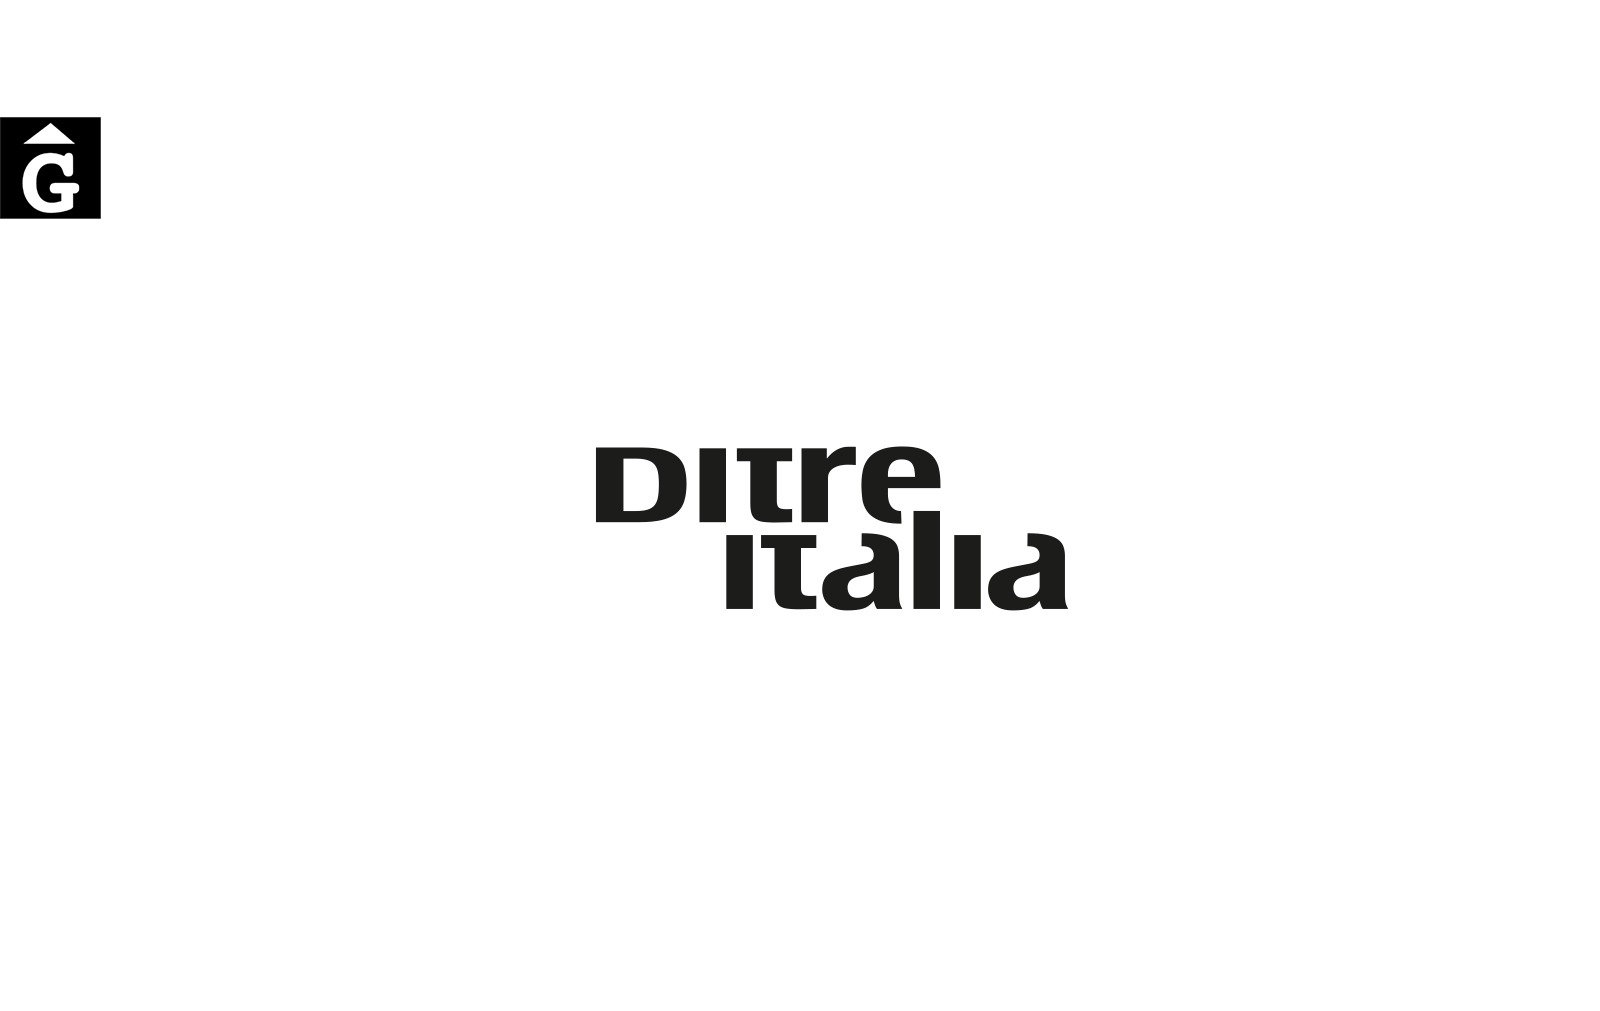 Ditre Italia Categories Marques per mobles Gifreu